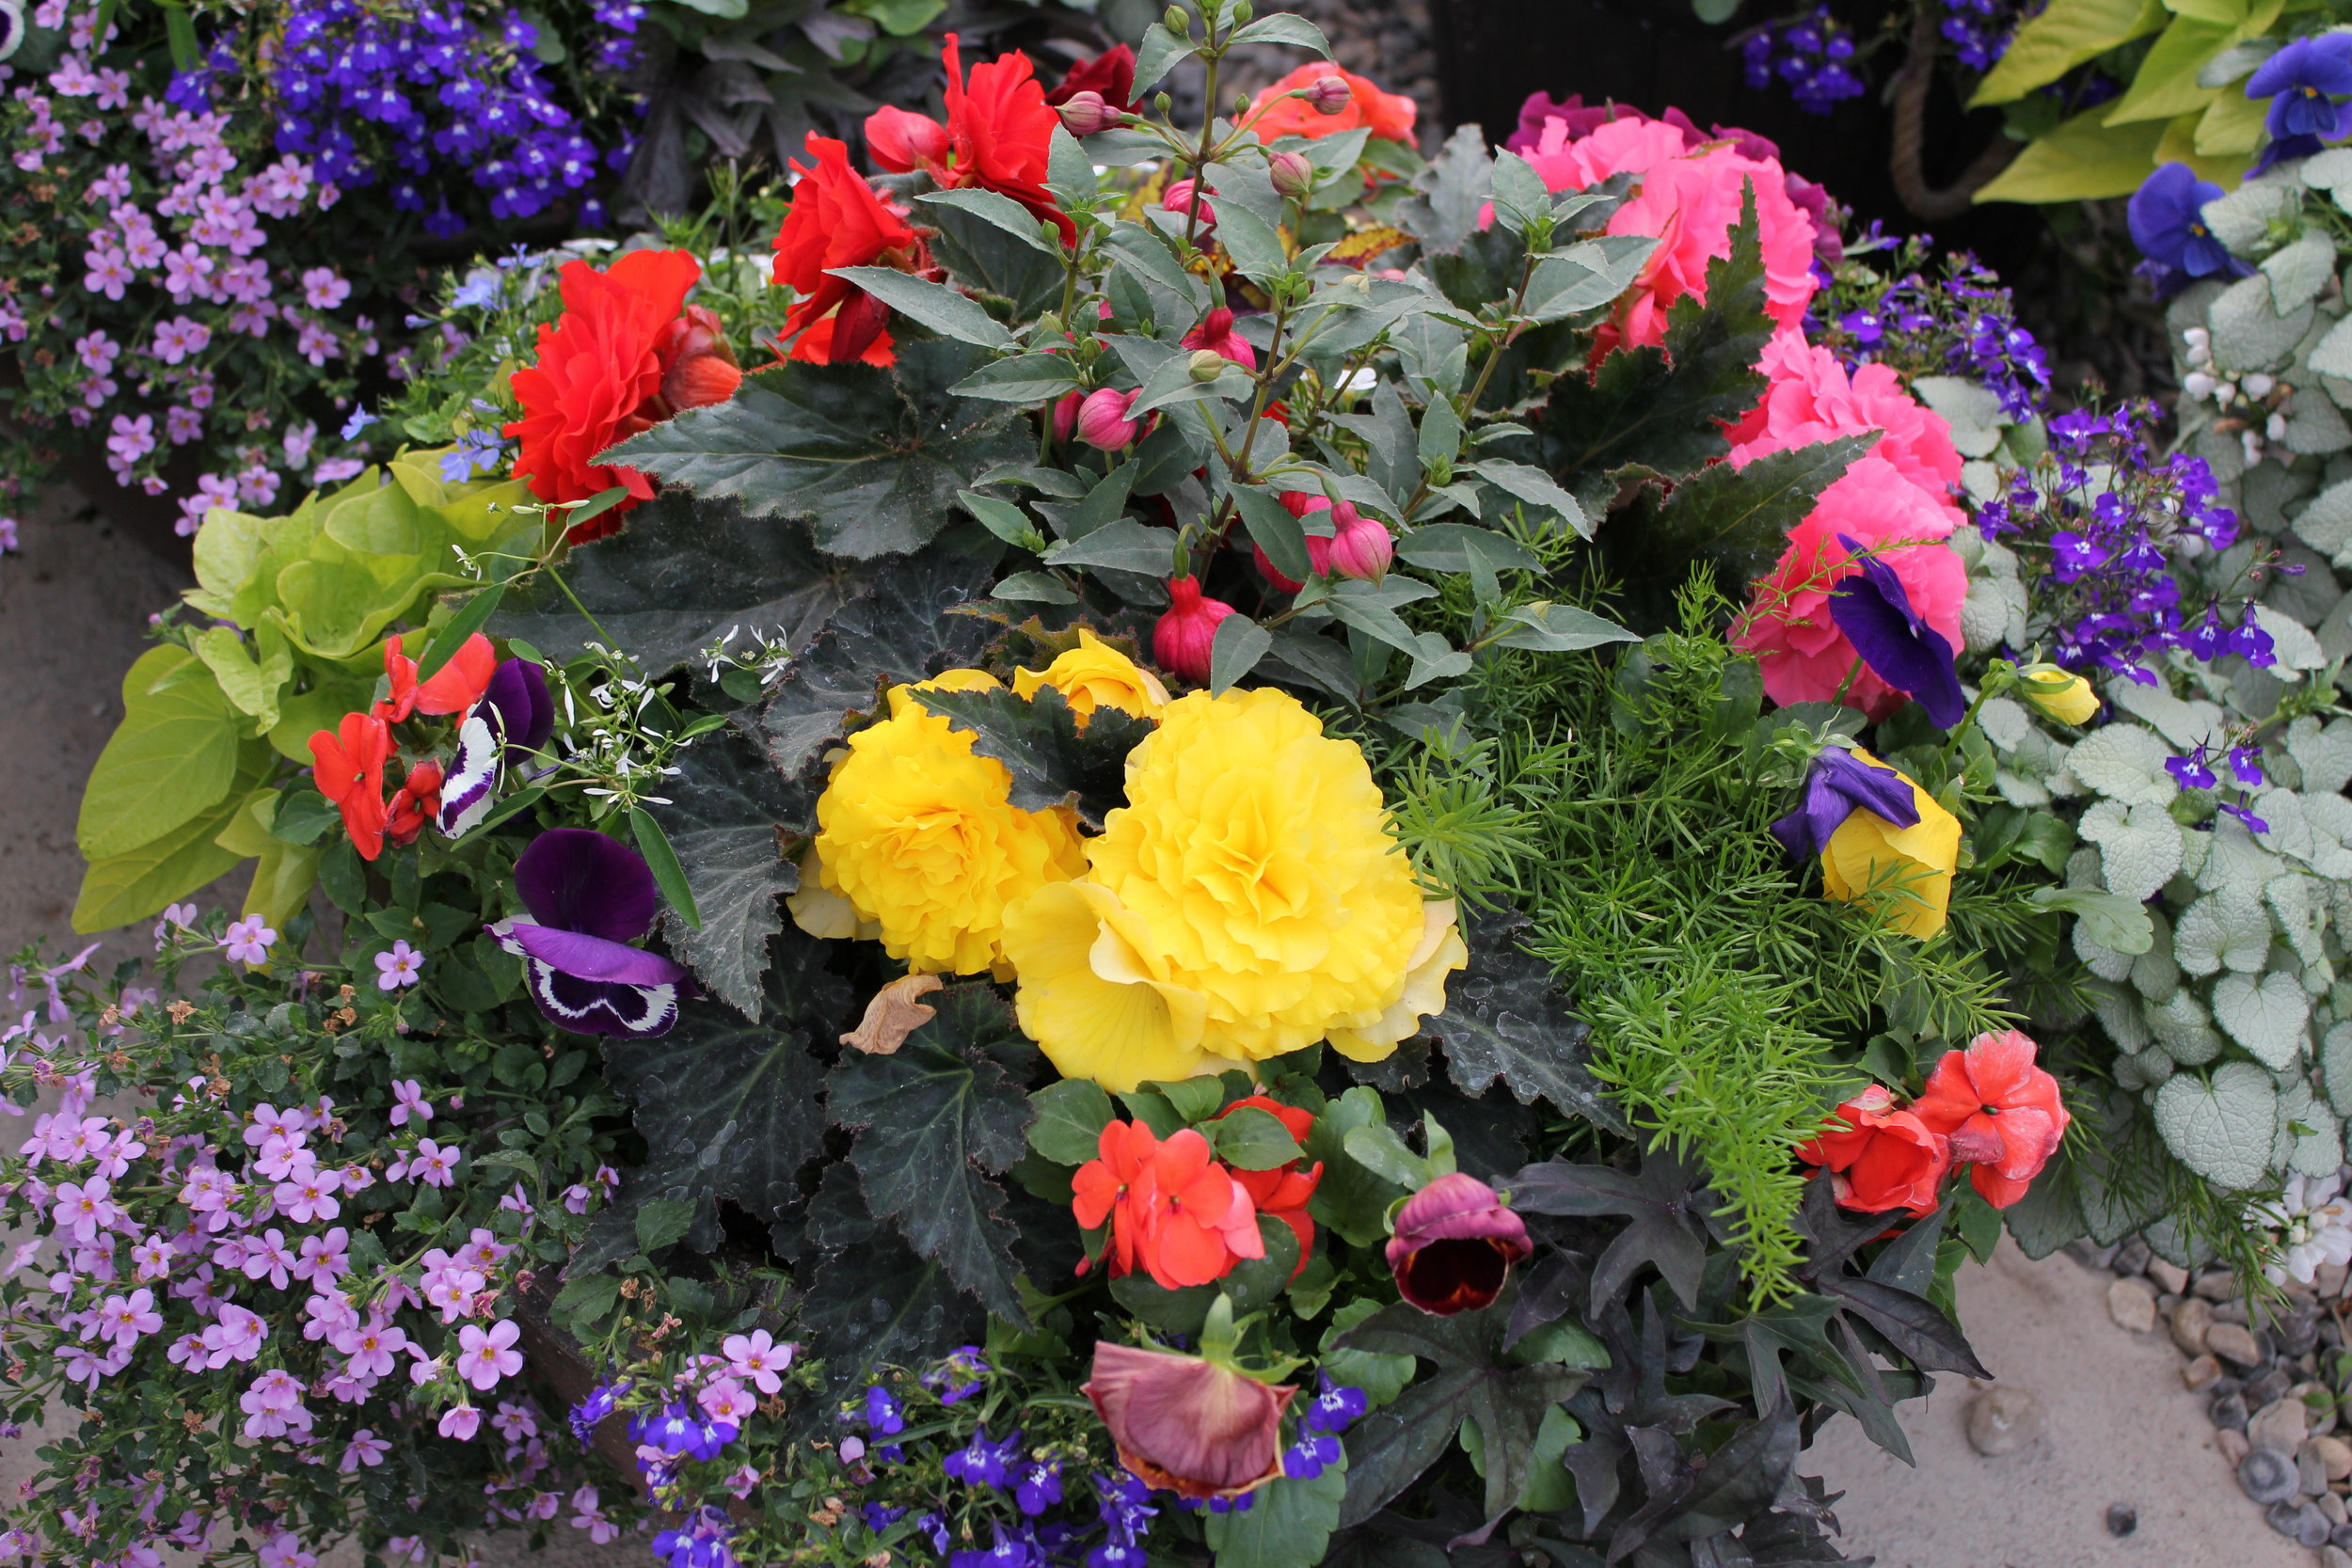 Plants & more - We specialize in custom planters and carry a large selection of ready made hanging baskets and containers. We also have a variety of plants, outdoor pots, garden decor, soil and fertilizers.